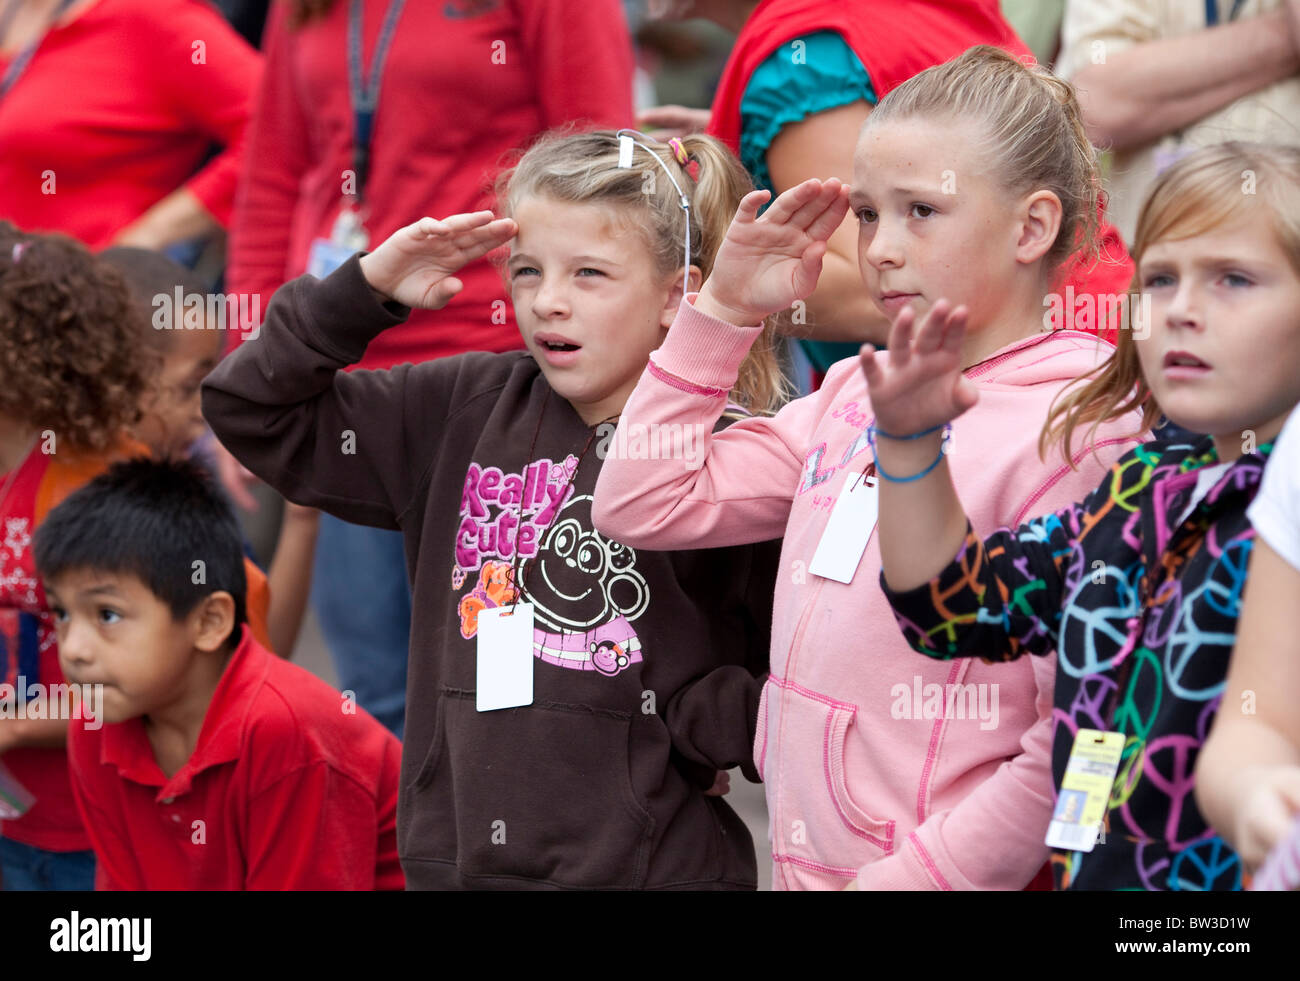 Elementary school children from Texas School for the Deaf show patriotism at the annual Veteran's Day parade - Stock Image